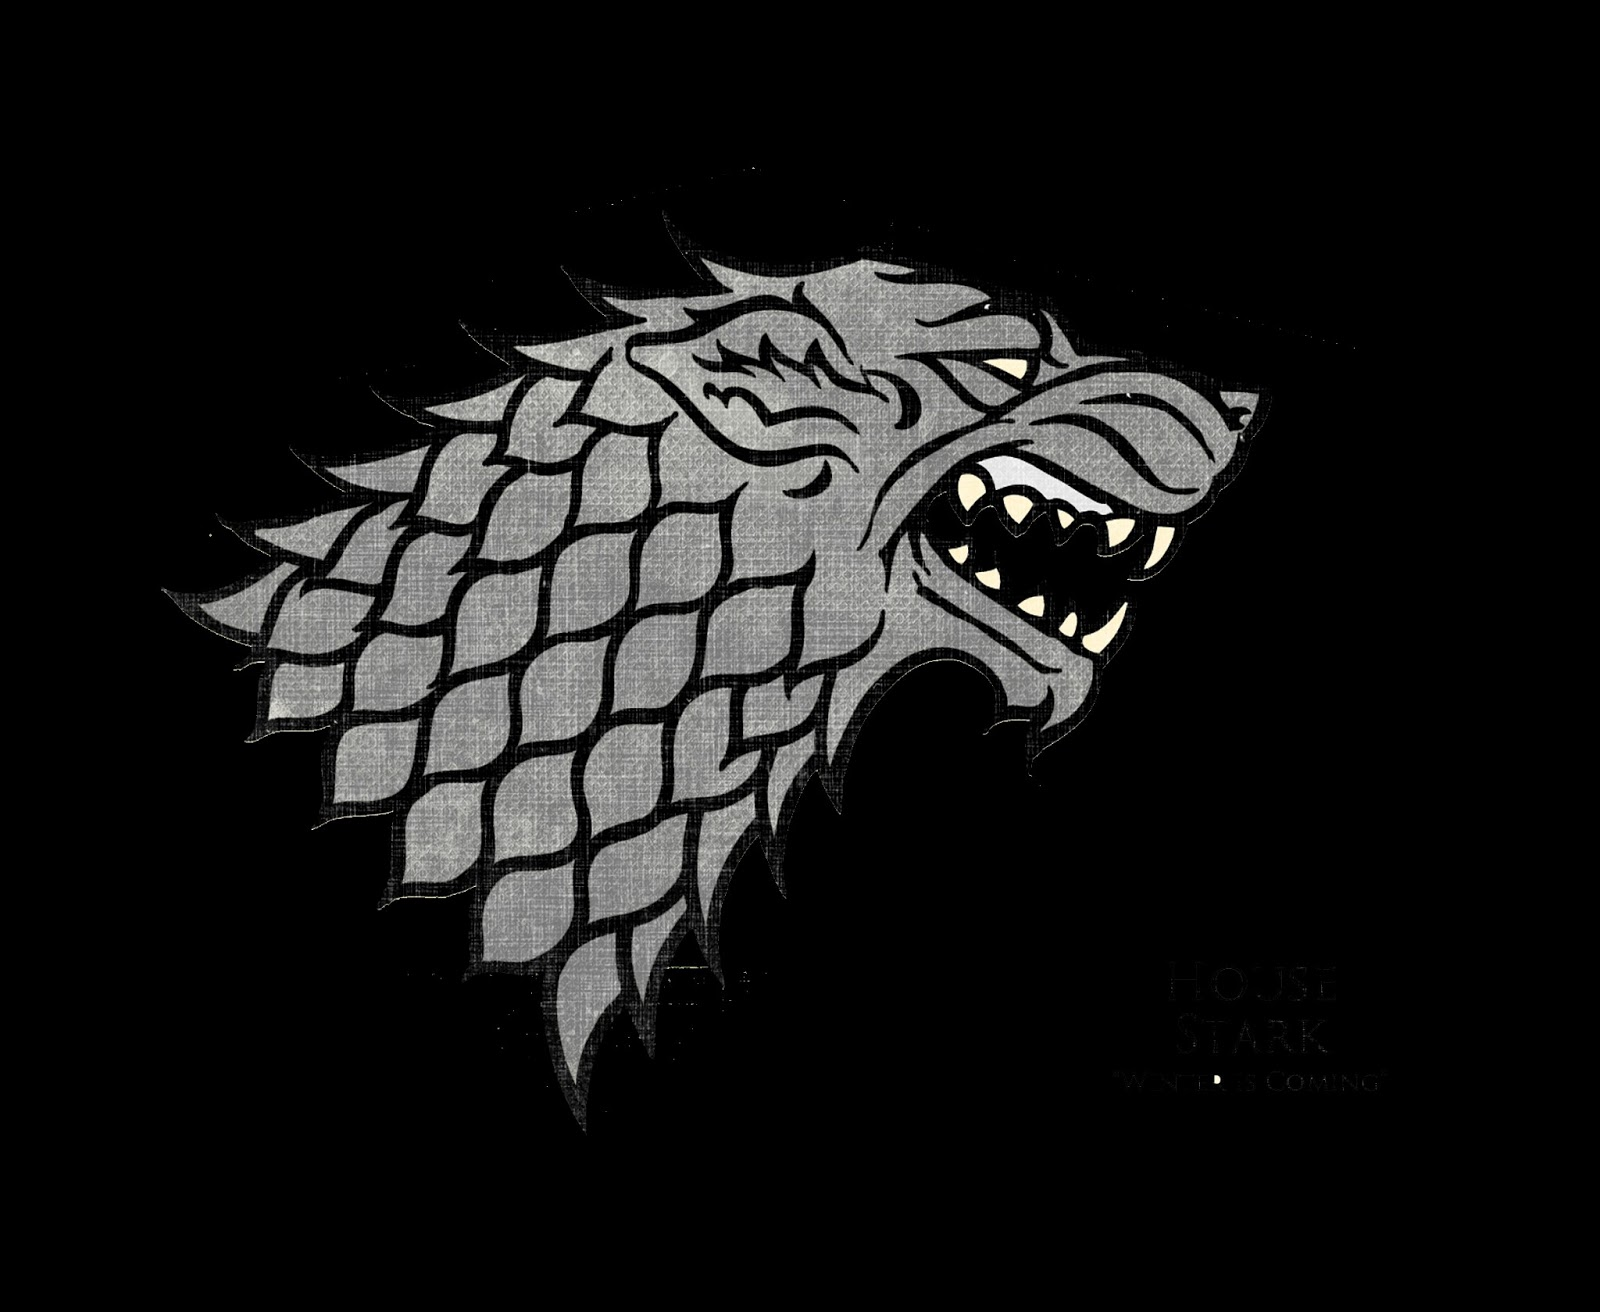 Game of thrones mouse cursor